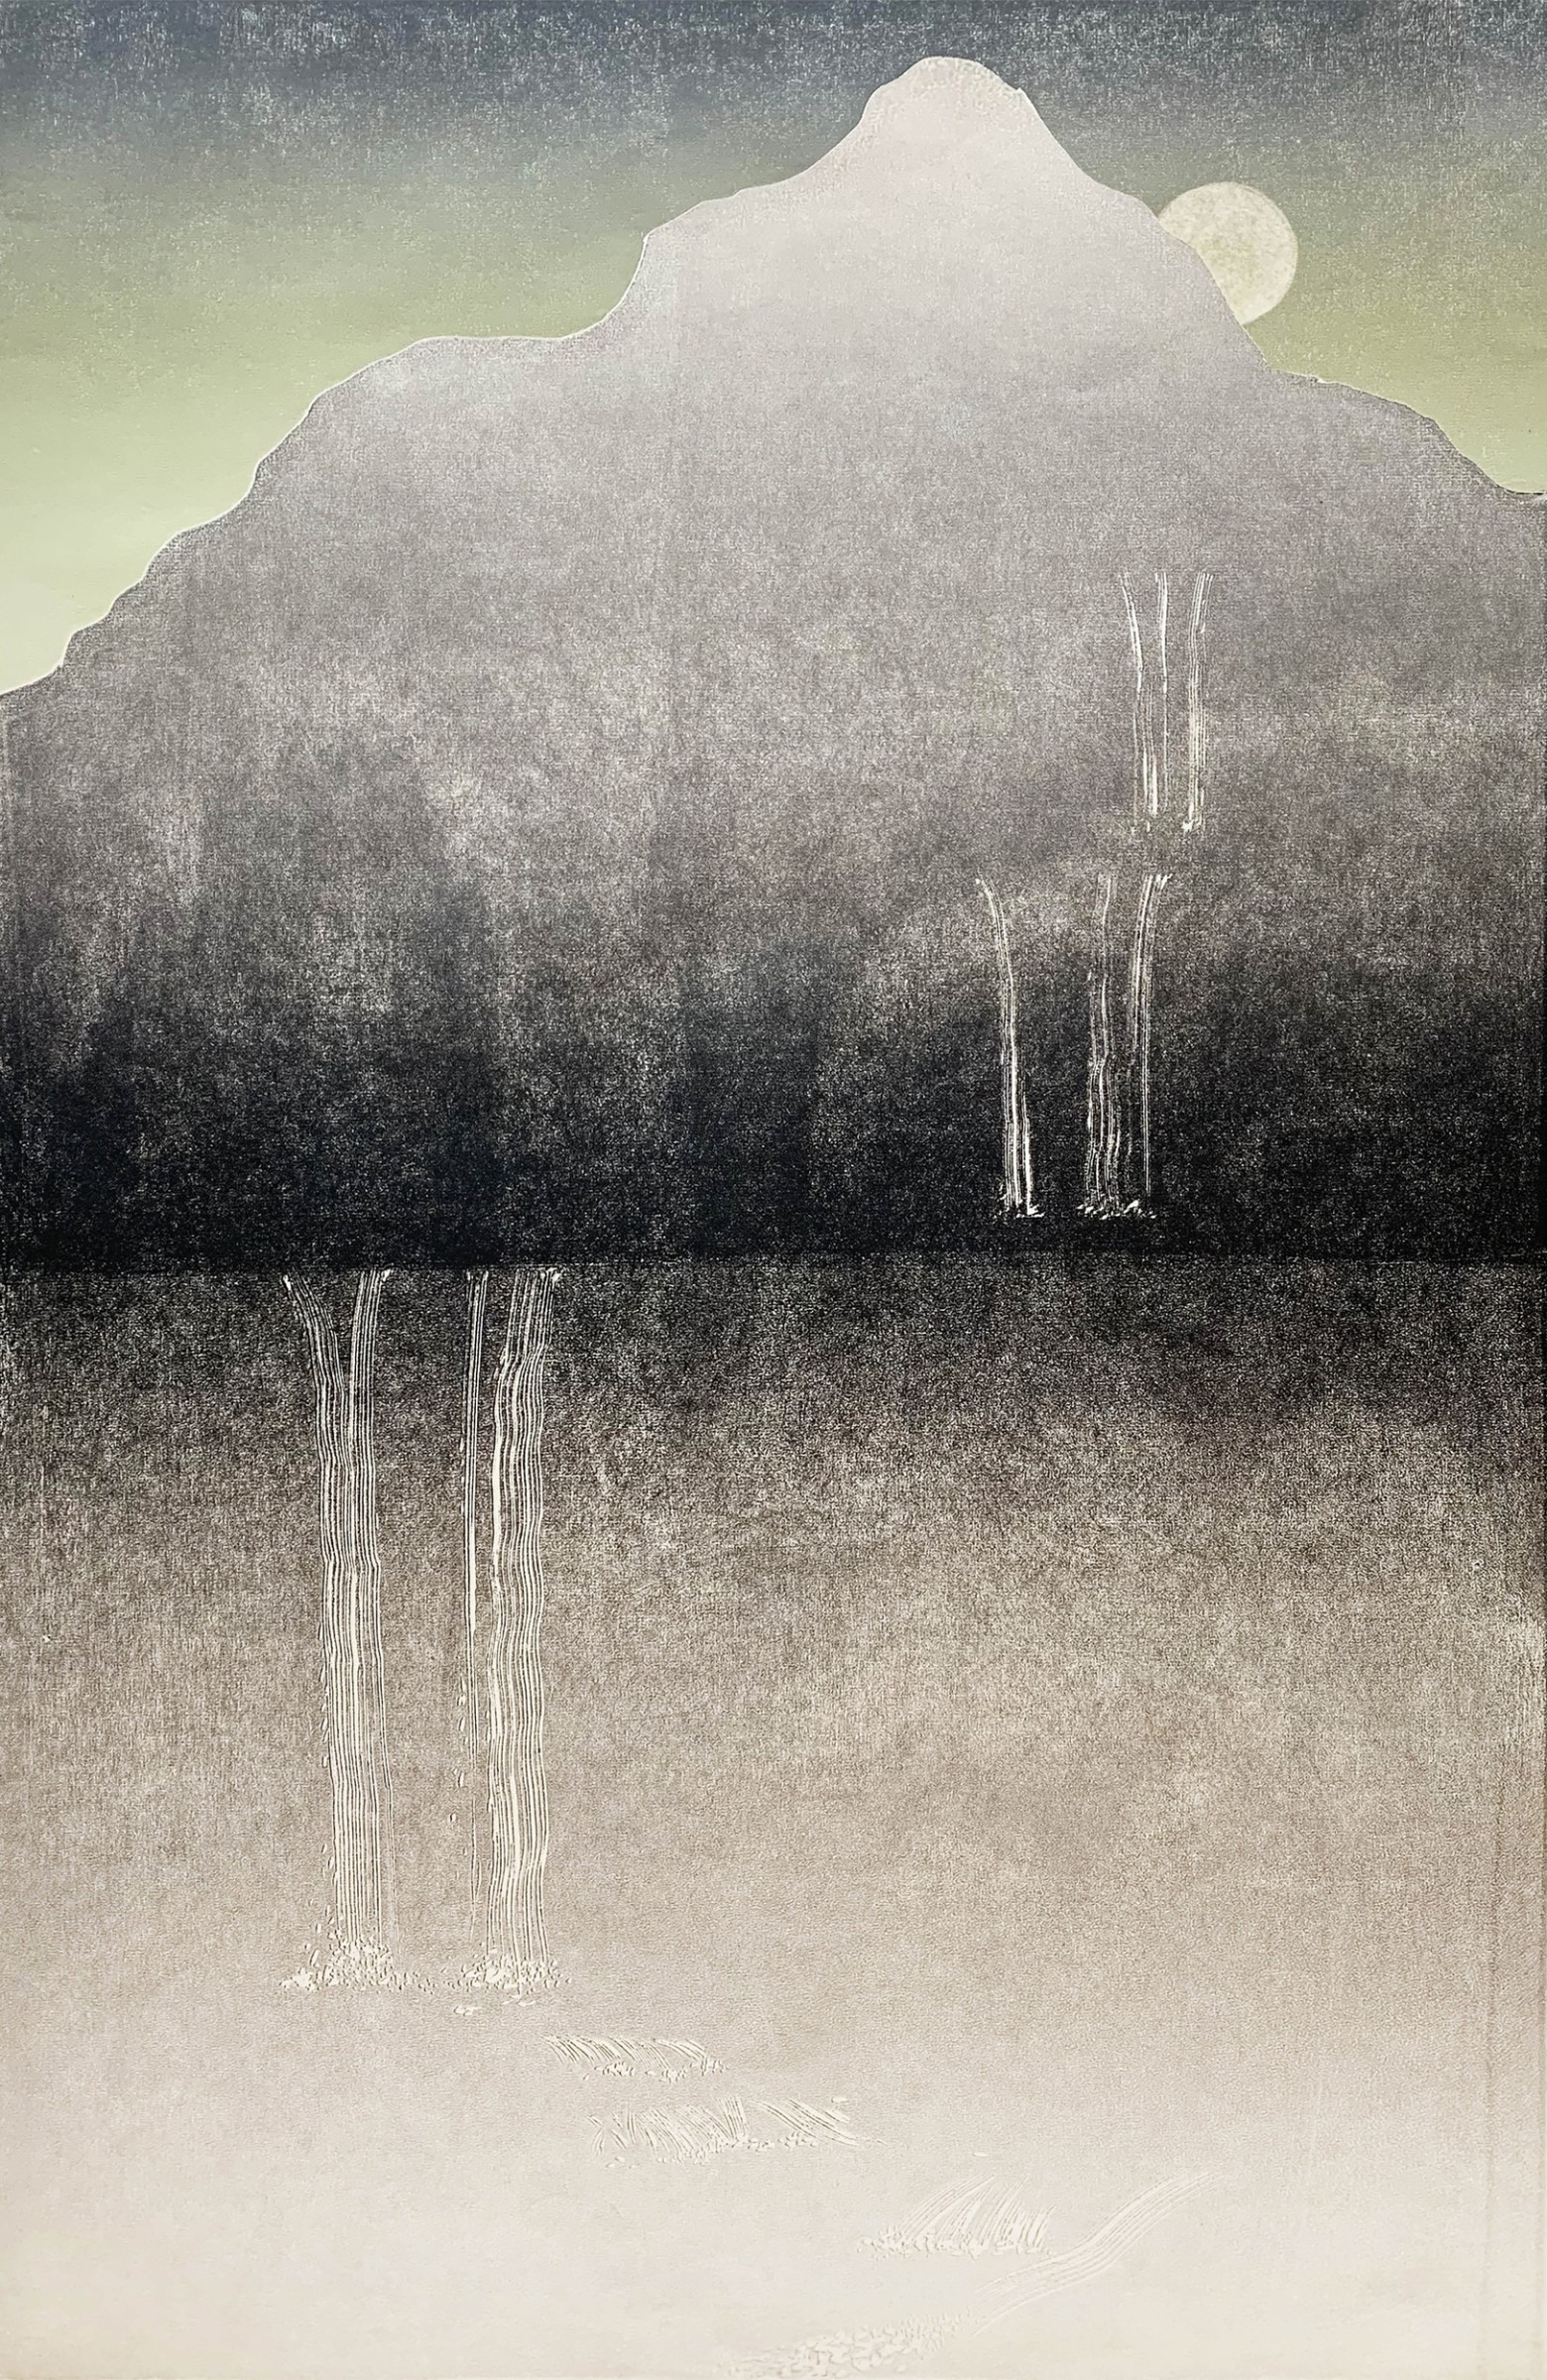 """<span class=""""link fancybox-details-link""""><a href=""""/exhibitions/17/works/image_standalone769/"""">View Detail Page</a></span><p><strong>Rod Nelson</strong></p><p>Ribbon Falls</p><p>woodblock</p><p>44 x 70cm</p><p>£680 framed</p><p>£490 unframed</p>"""